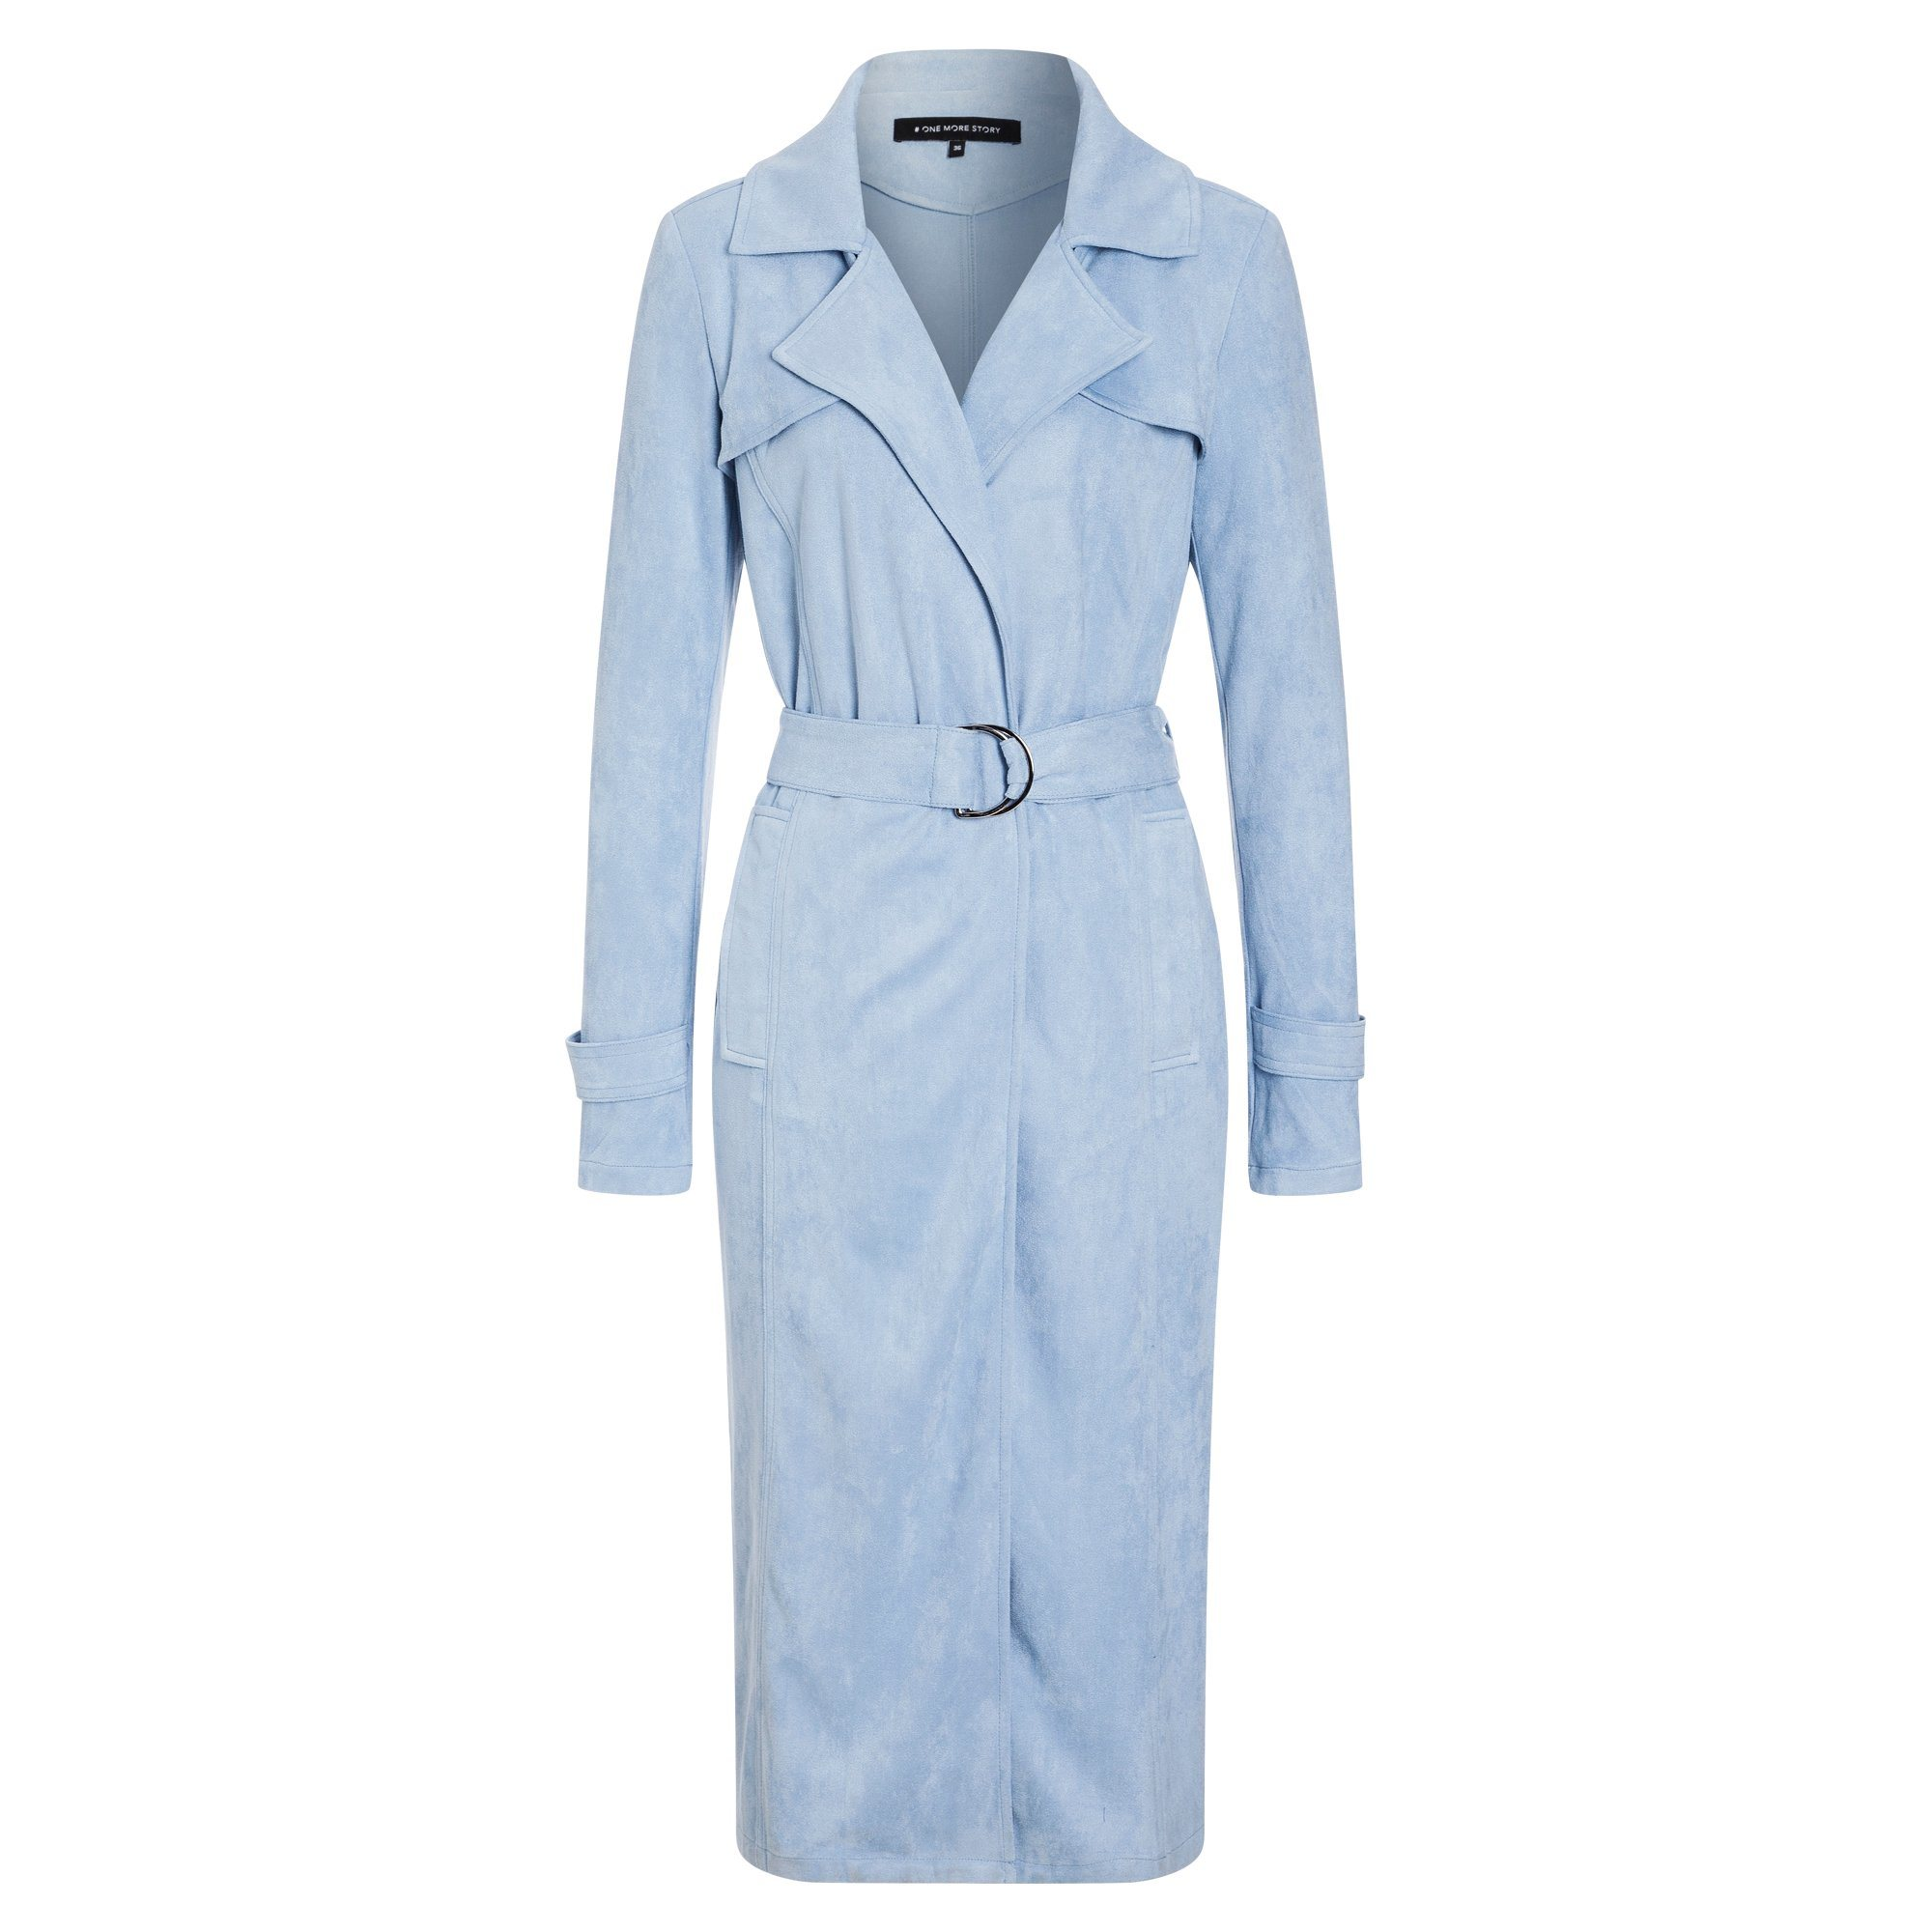 ONE MORE STORY Velours Trench Coat im Leder-Look   Bekleidung > Mäntel > Trenchcoats   Velours - Elasthan   ONE MORE STORY